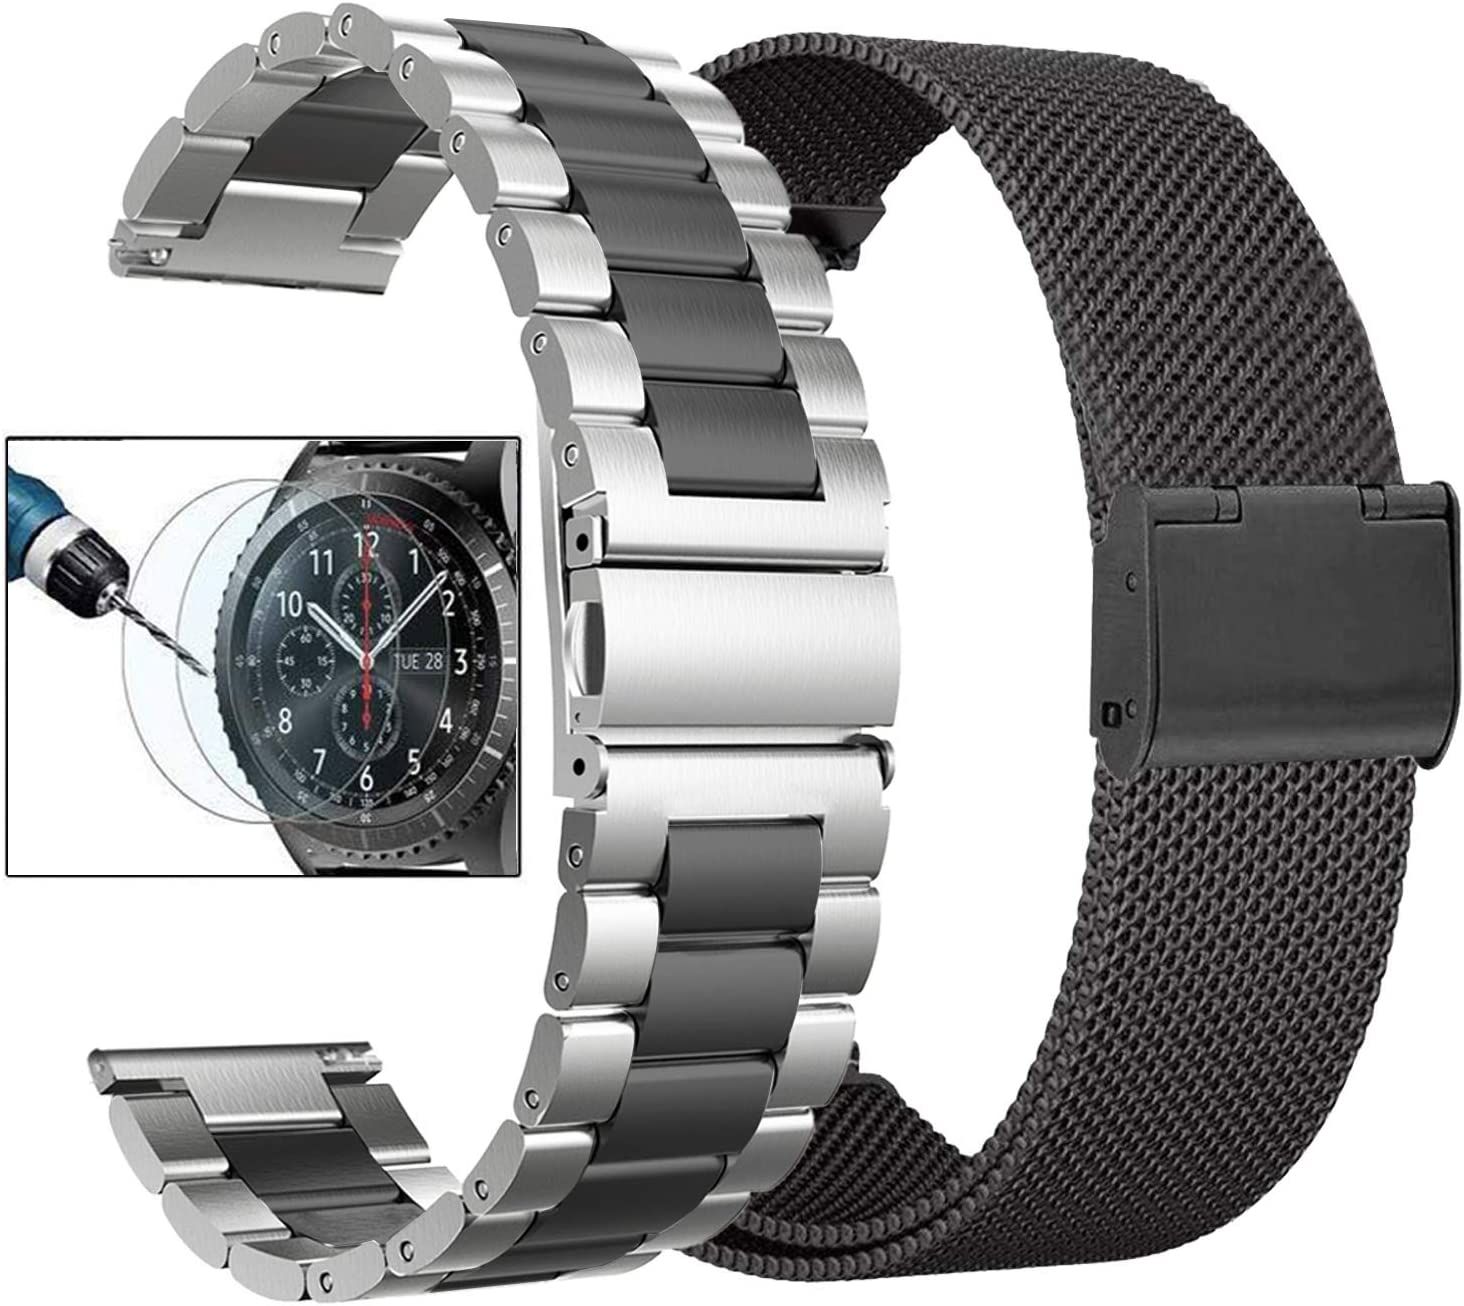 Valkit Compatible Gear S3 Frontier/Galaxy Watch 3 45mm Bands, Solid Stainless Steel Metal Watch Band Business Bracelet Strap+Screen Protector for Gear S3 Frontier/Galaxy Watch 46mm, Sliver + Black